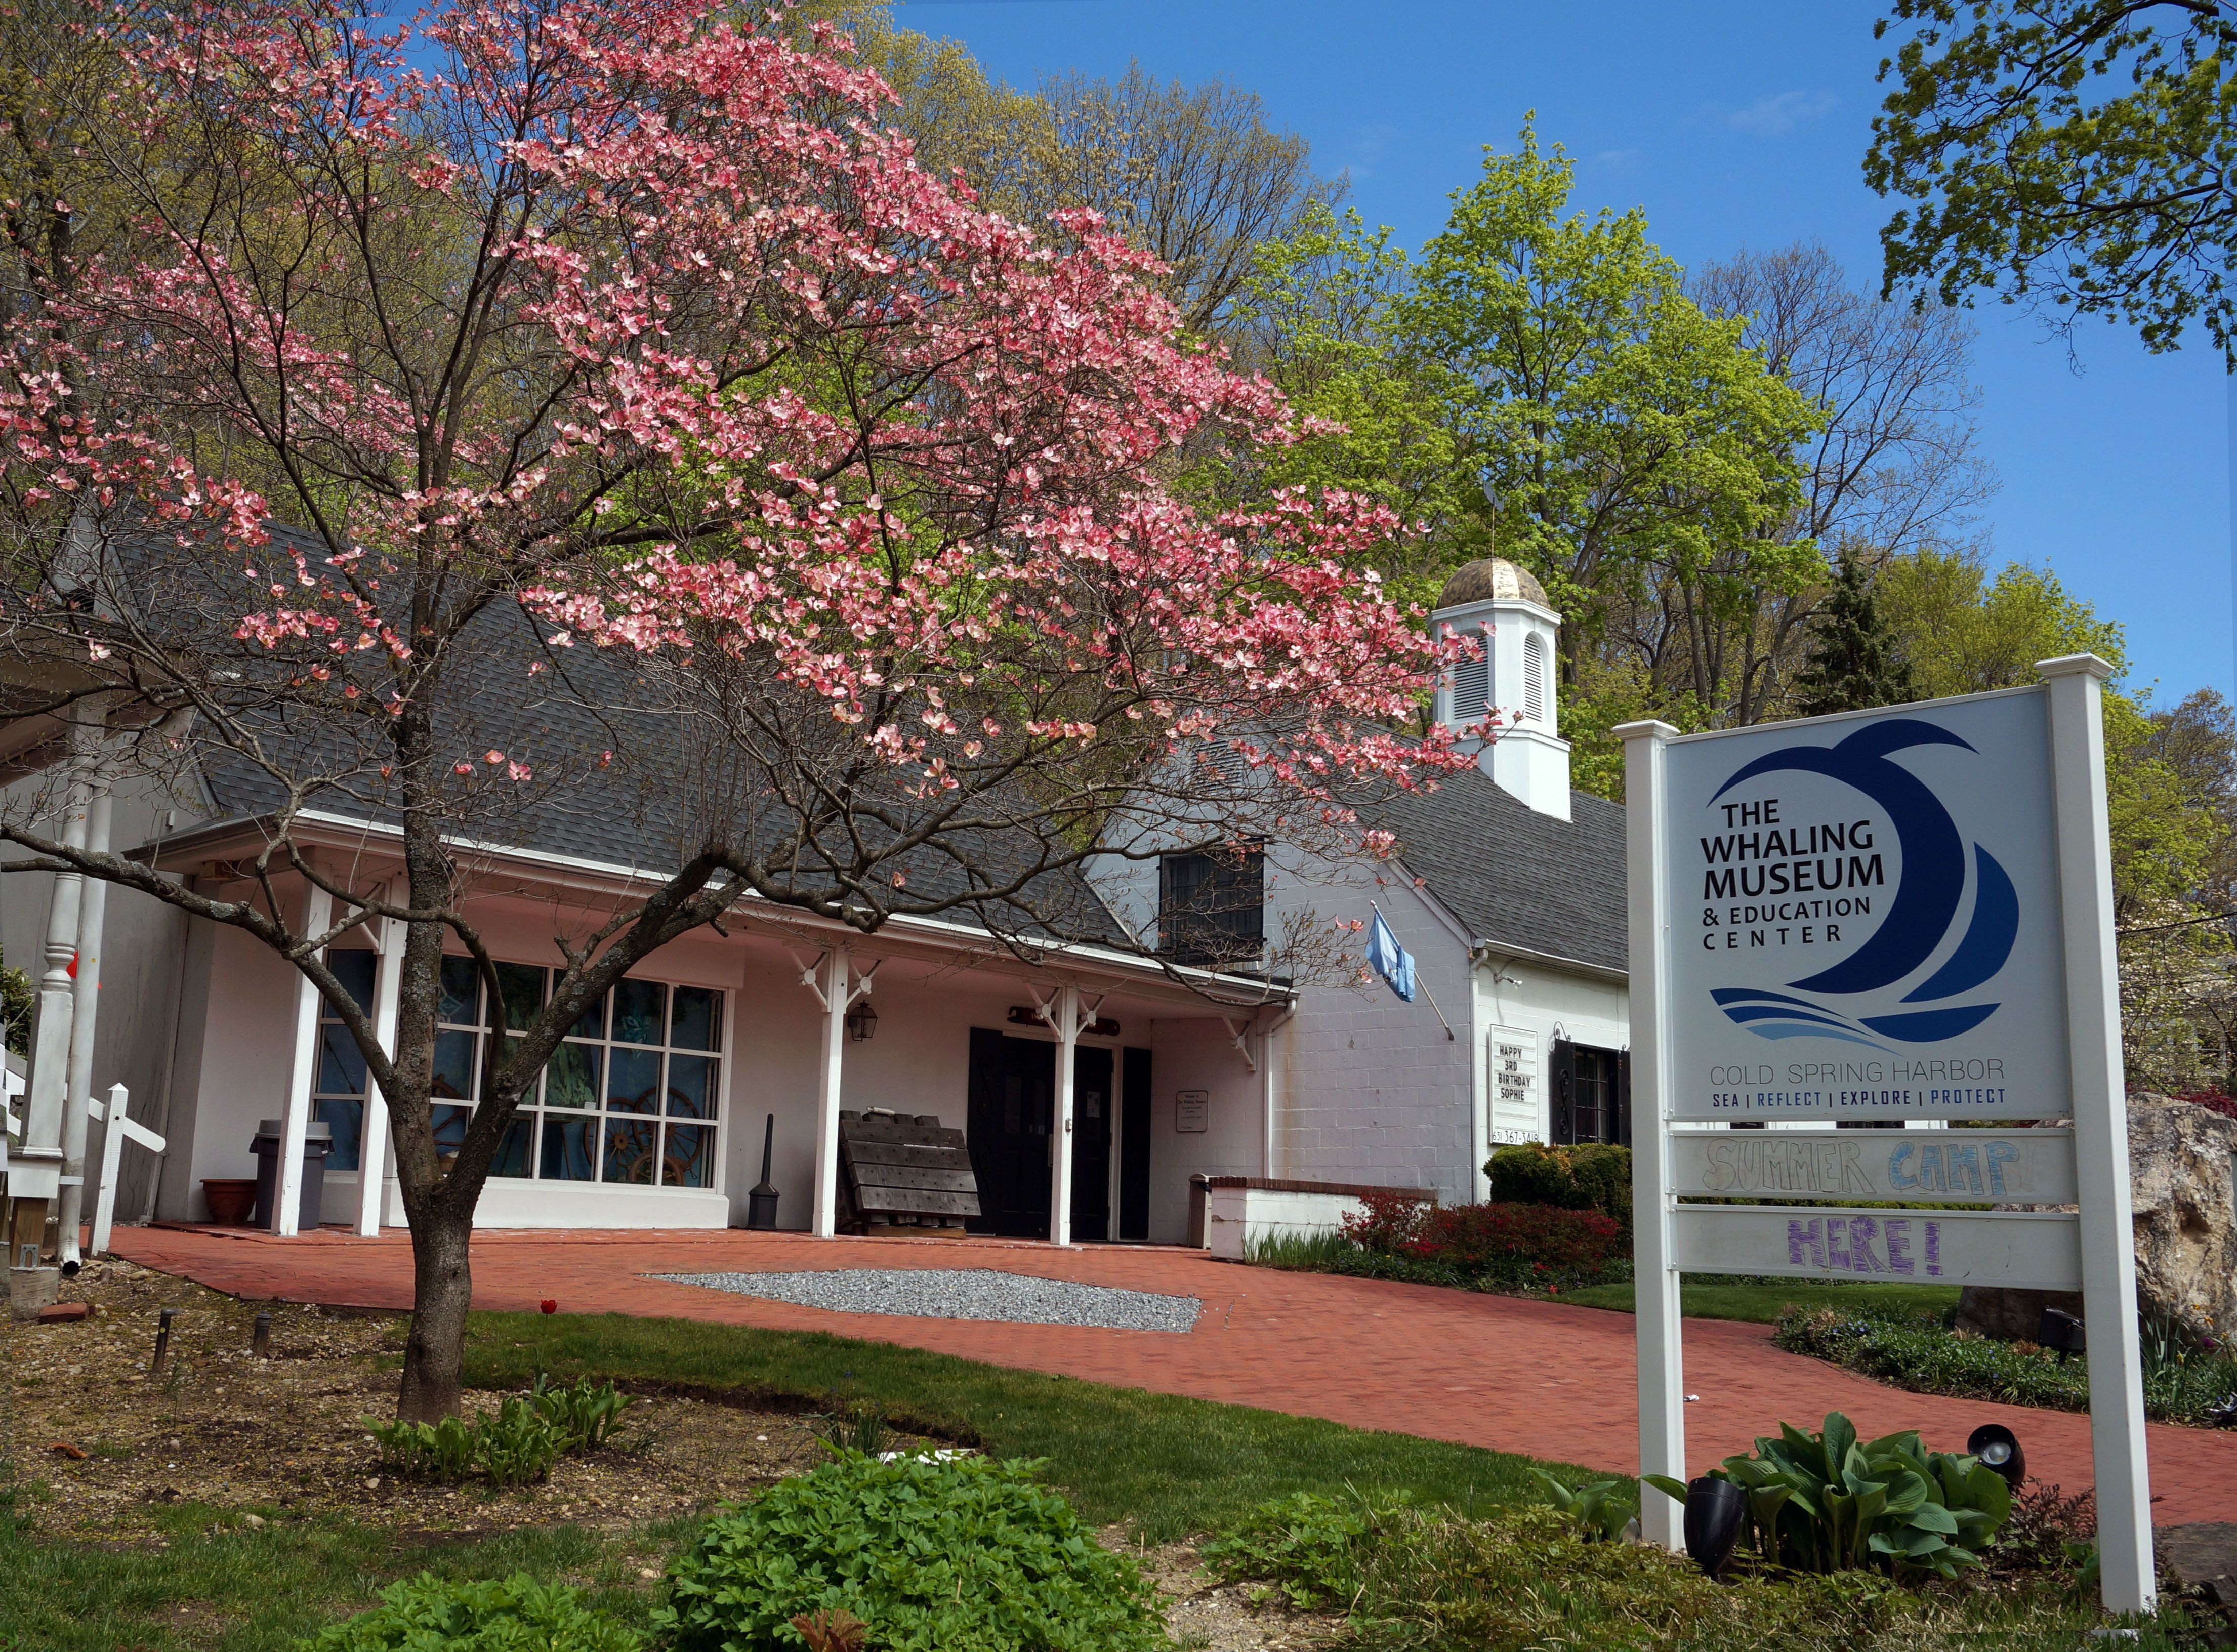 Cold Spring Harbor Whaling Museum